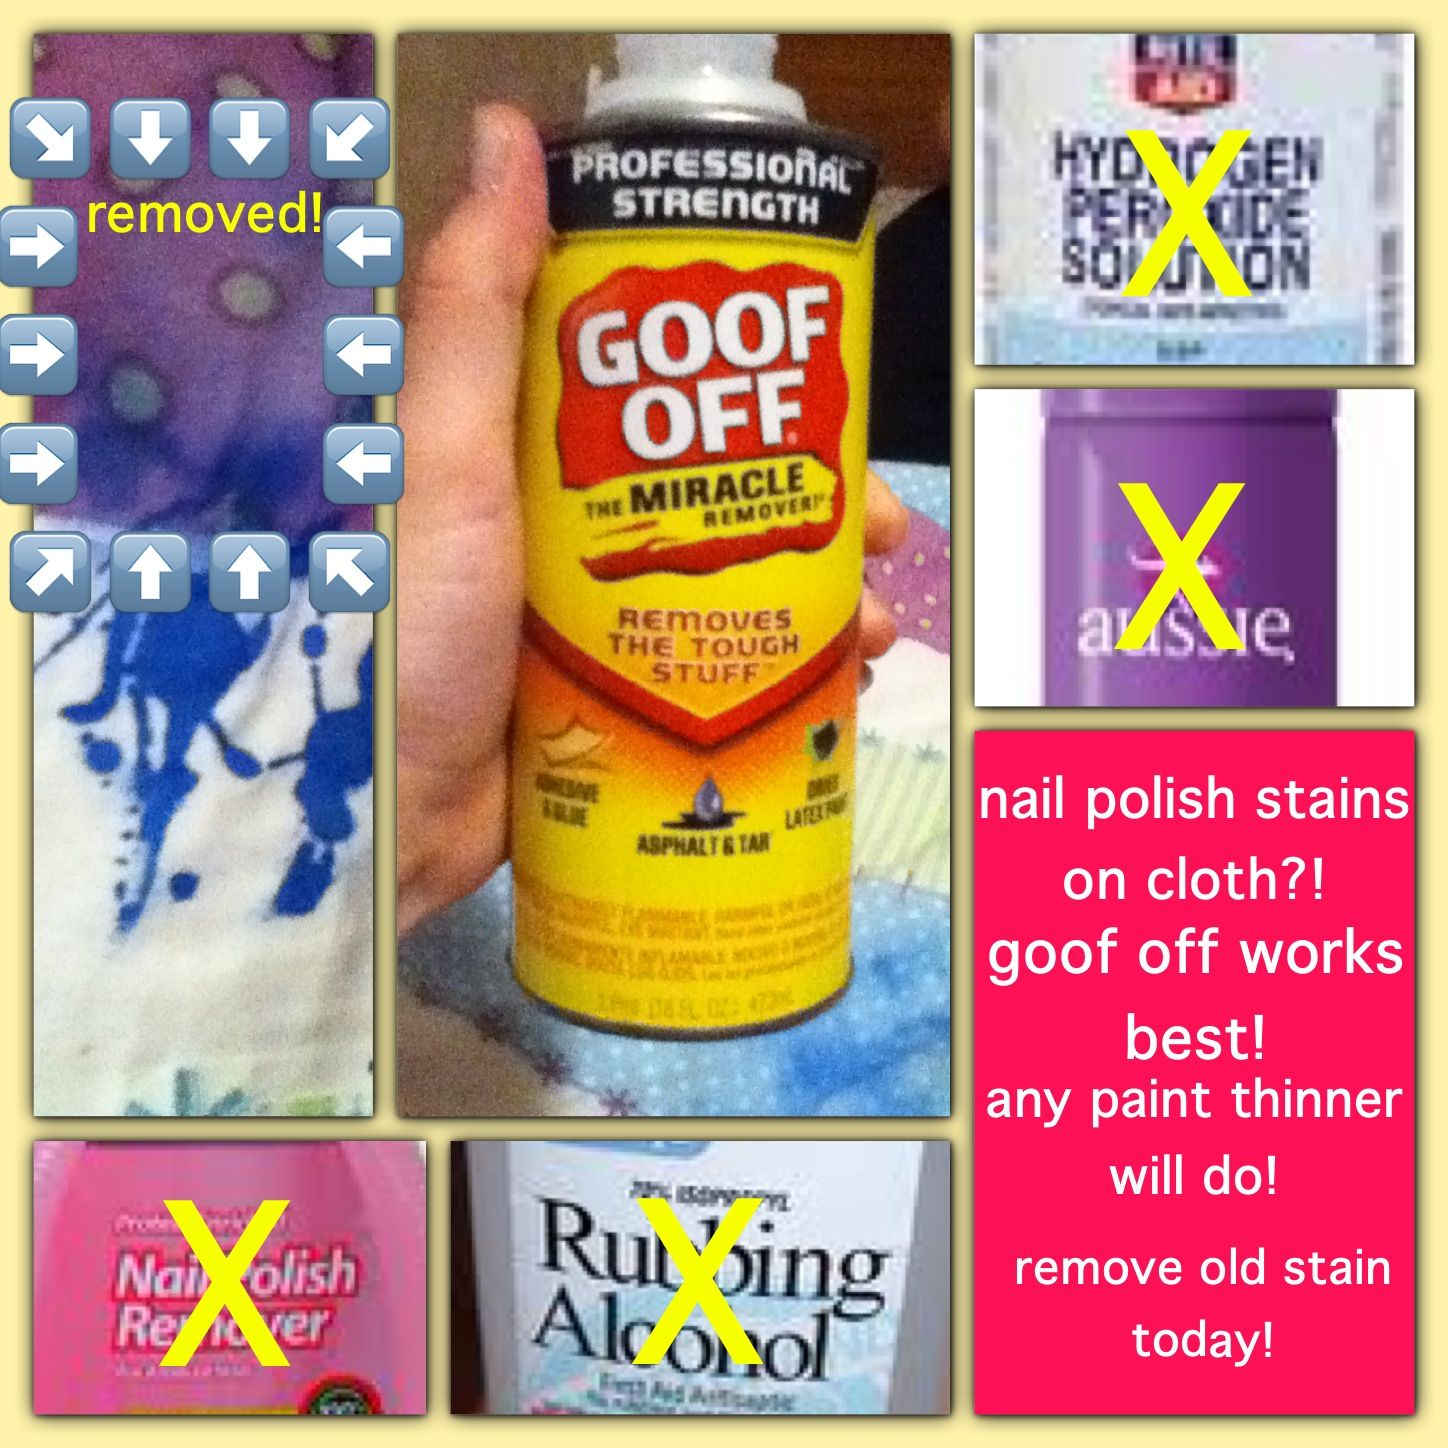 Nail Polish Remover Paint Thinner And Goof Off Can Remove Nail Polish Stain From Clothes Blankets An Stain On Clothes Nail Polish Stain Paint Thinner